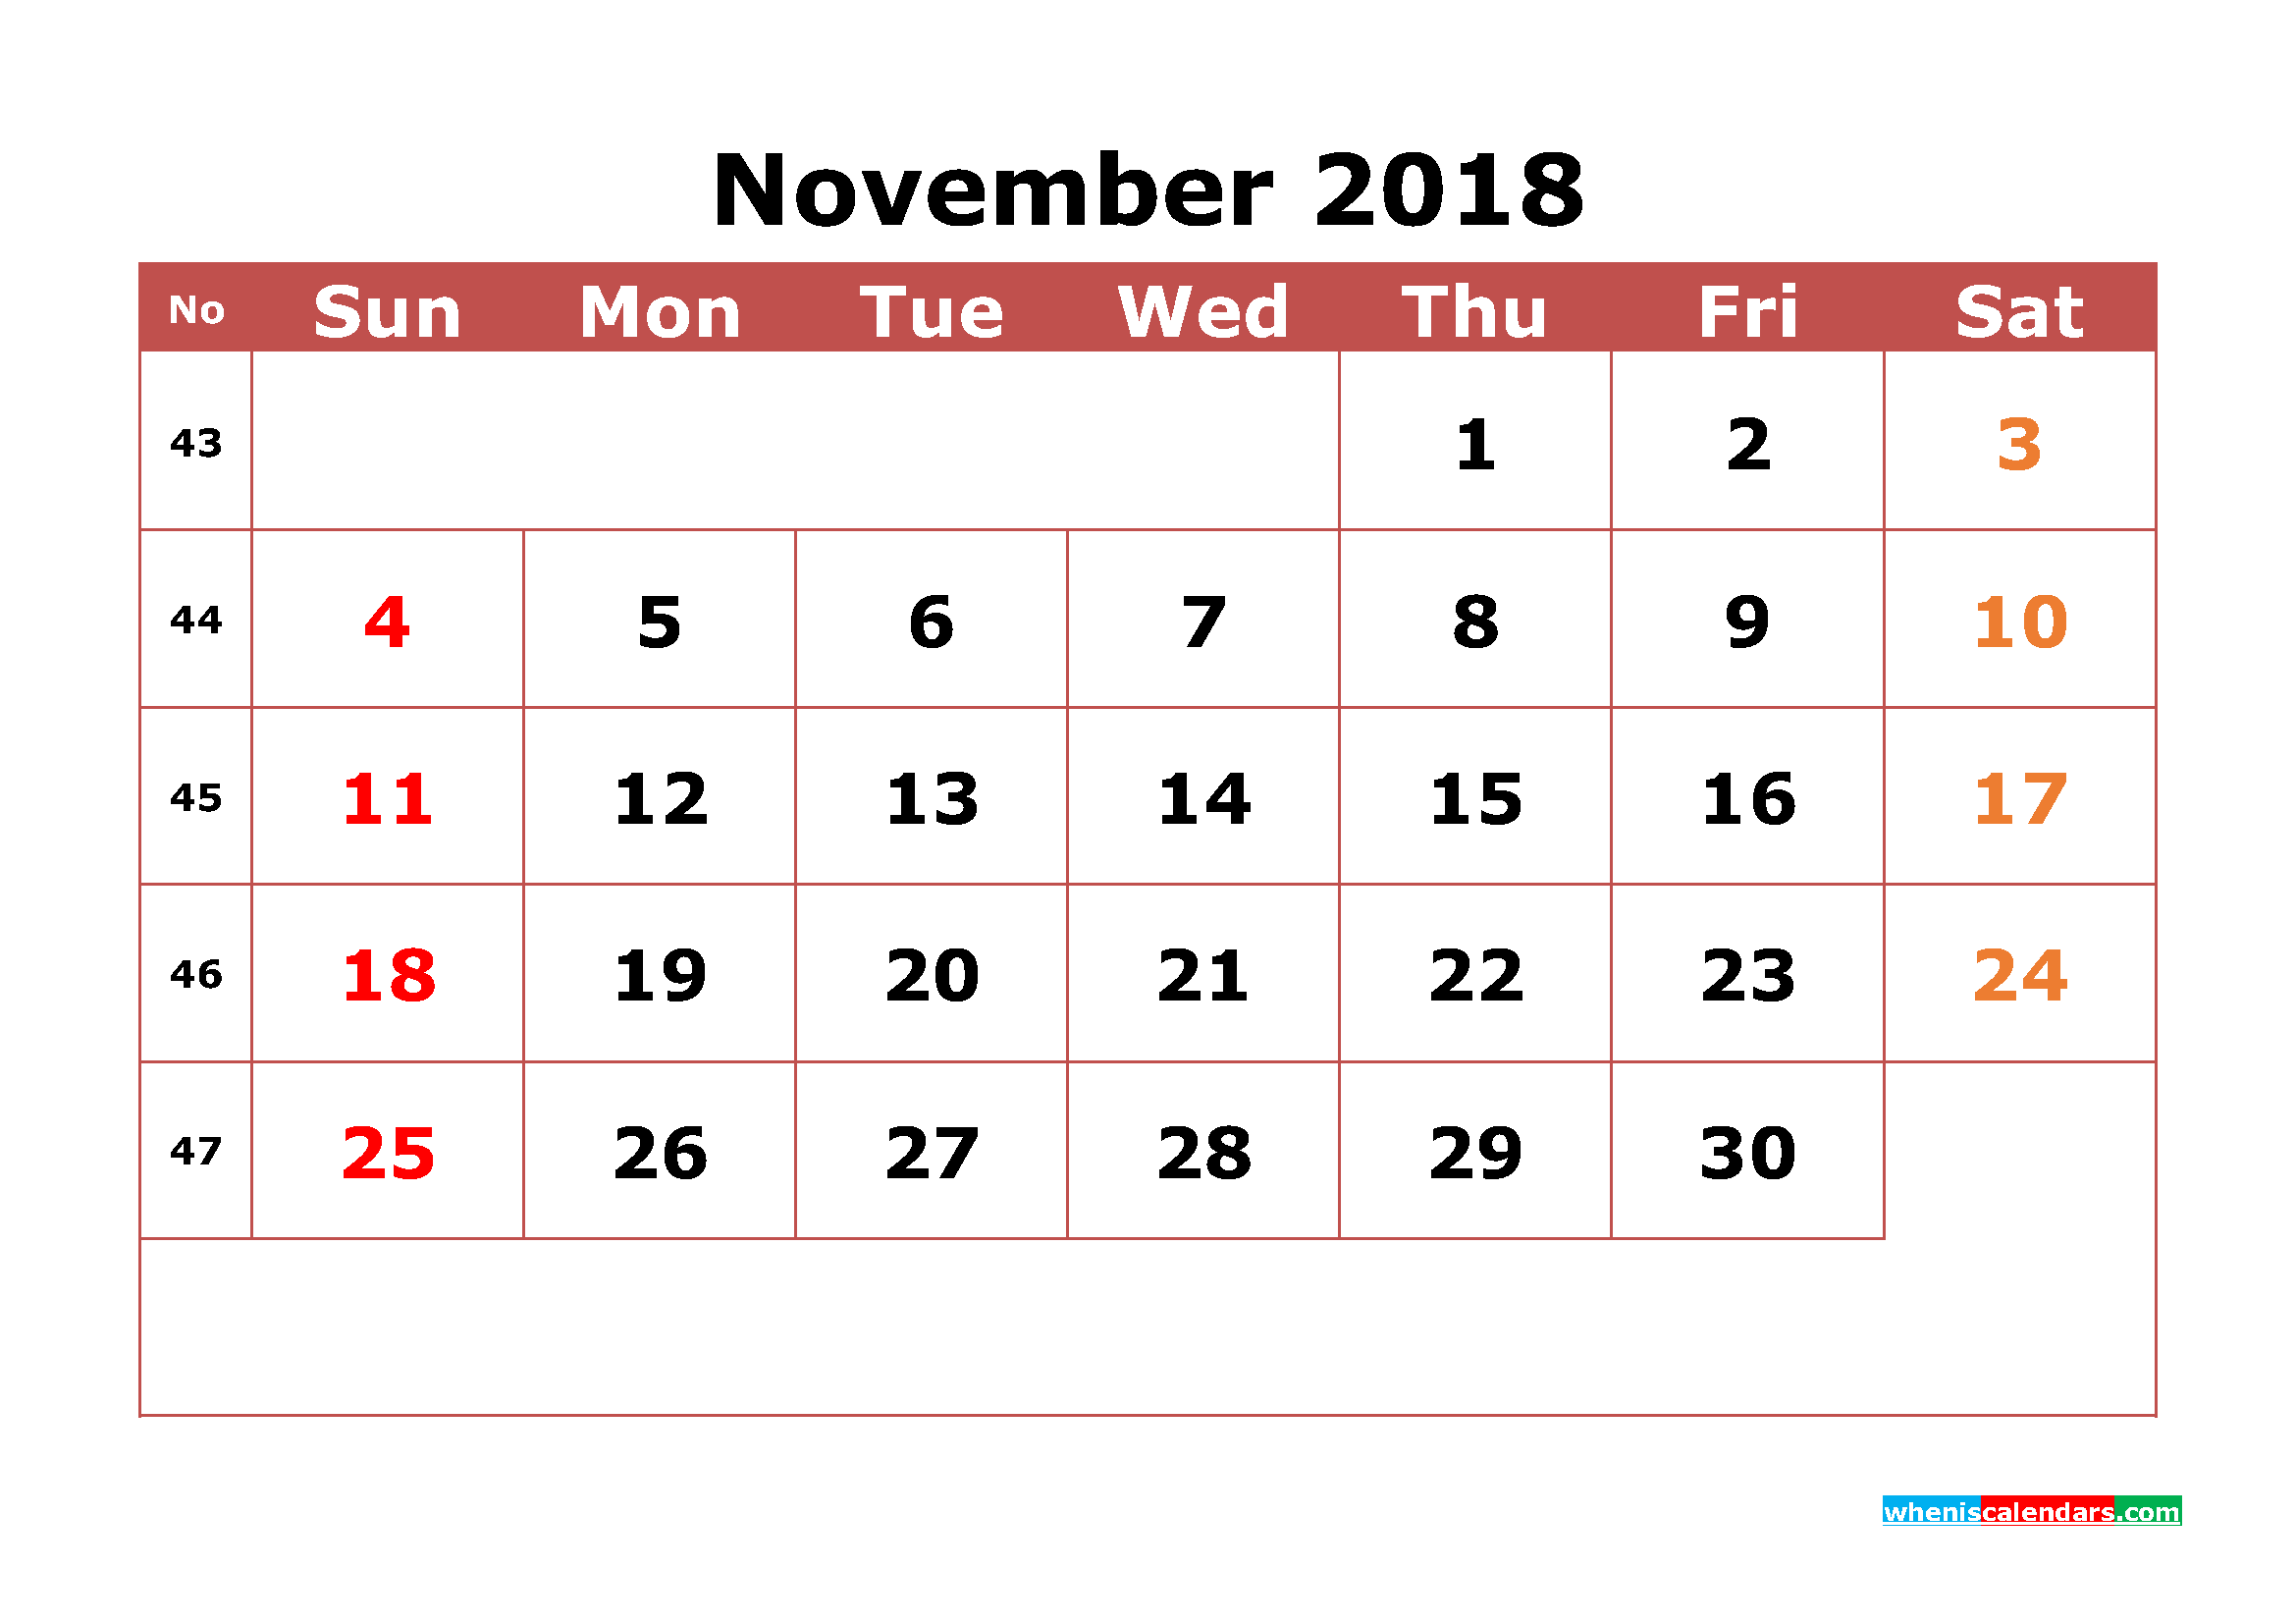 November 2018 Calendar Printable with Week Numbers Image